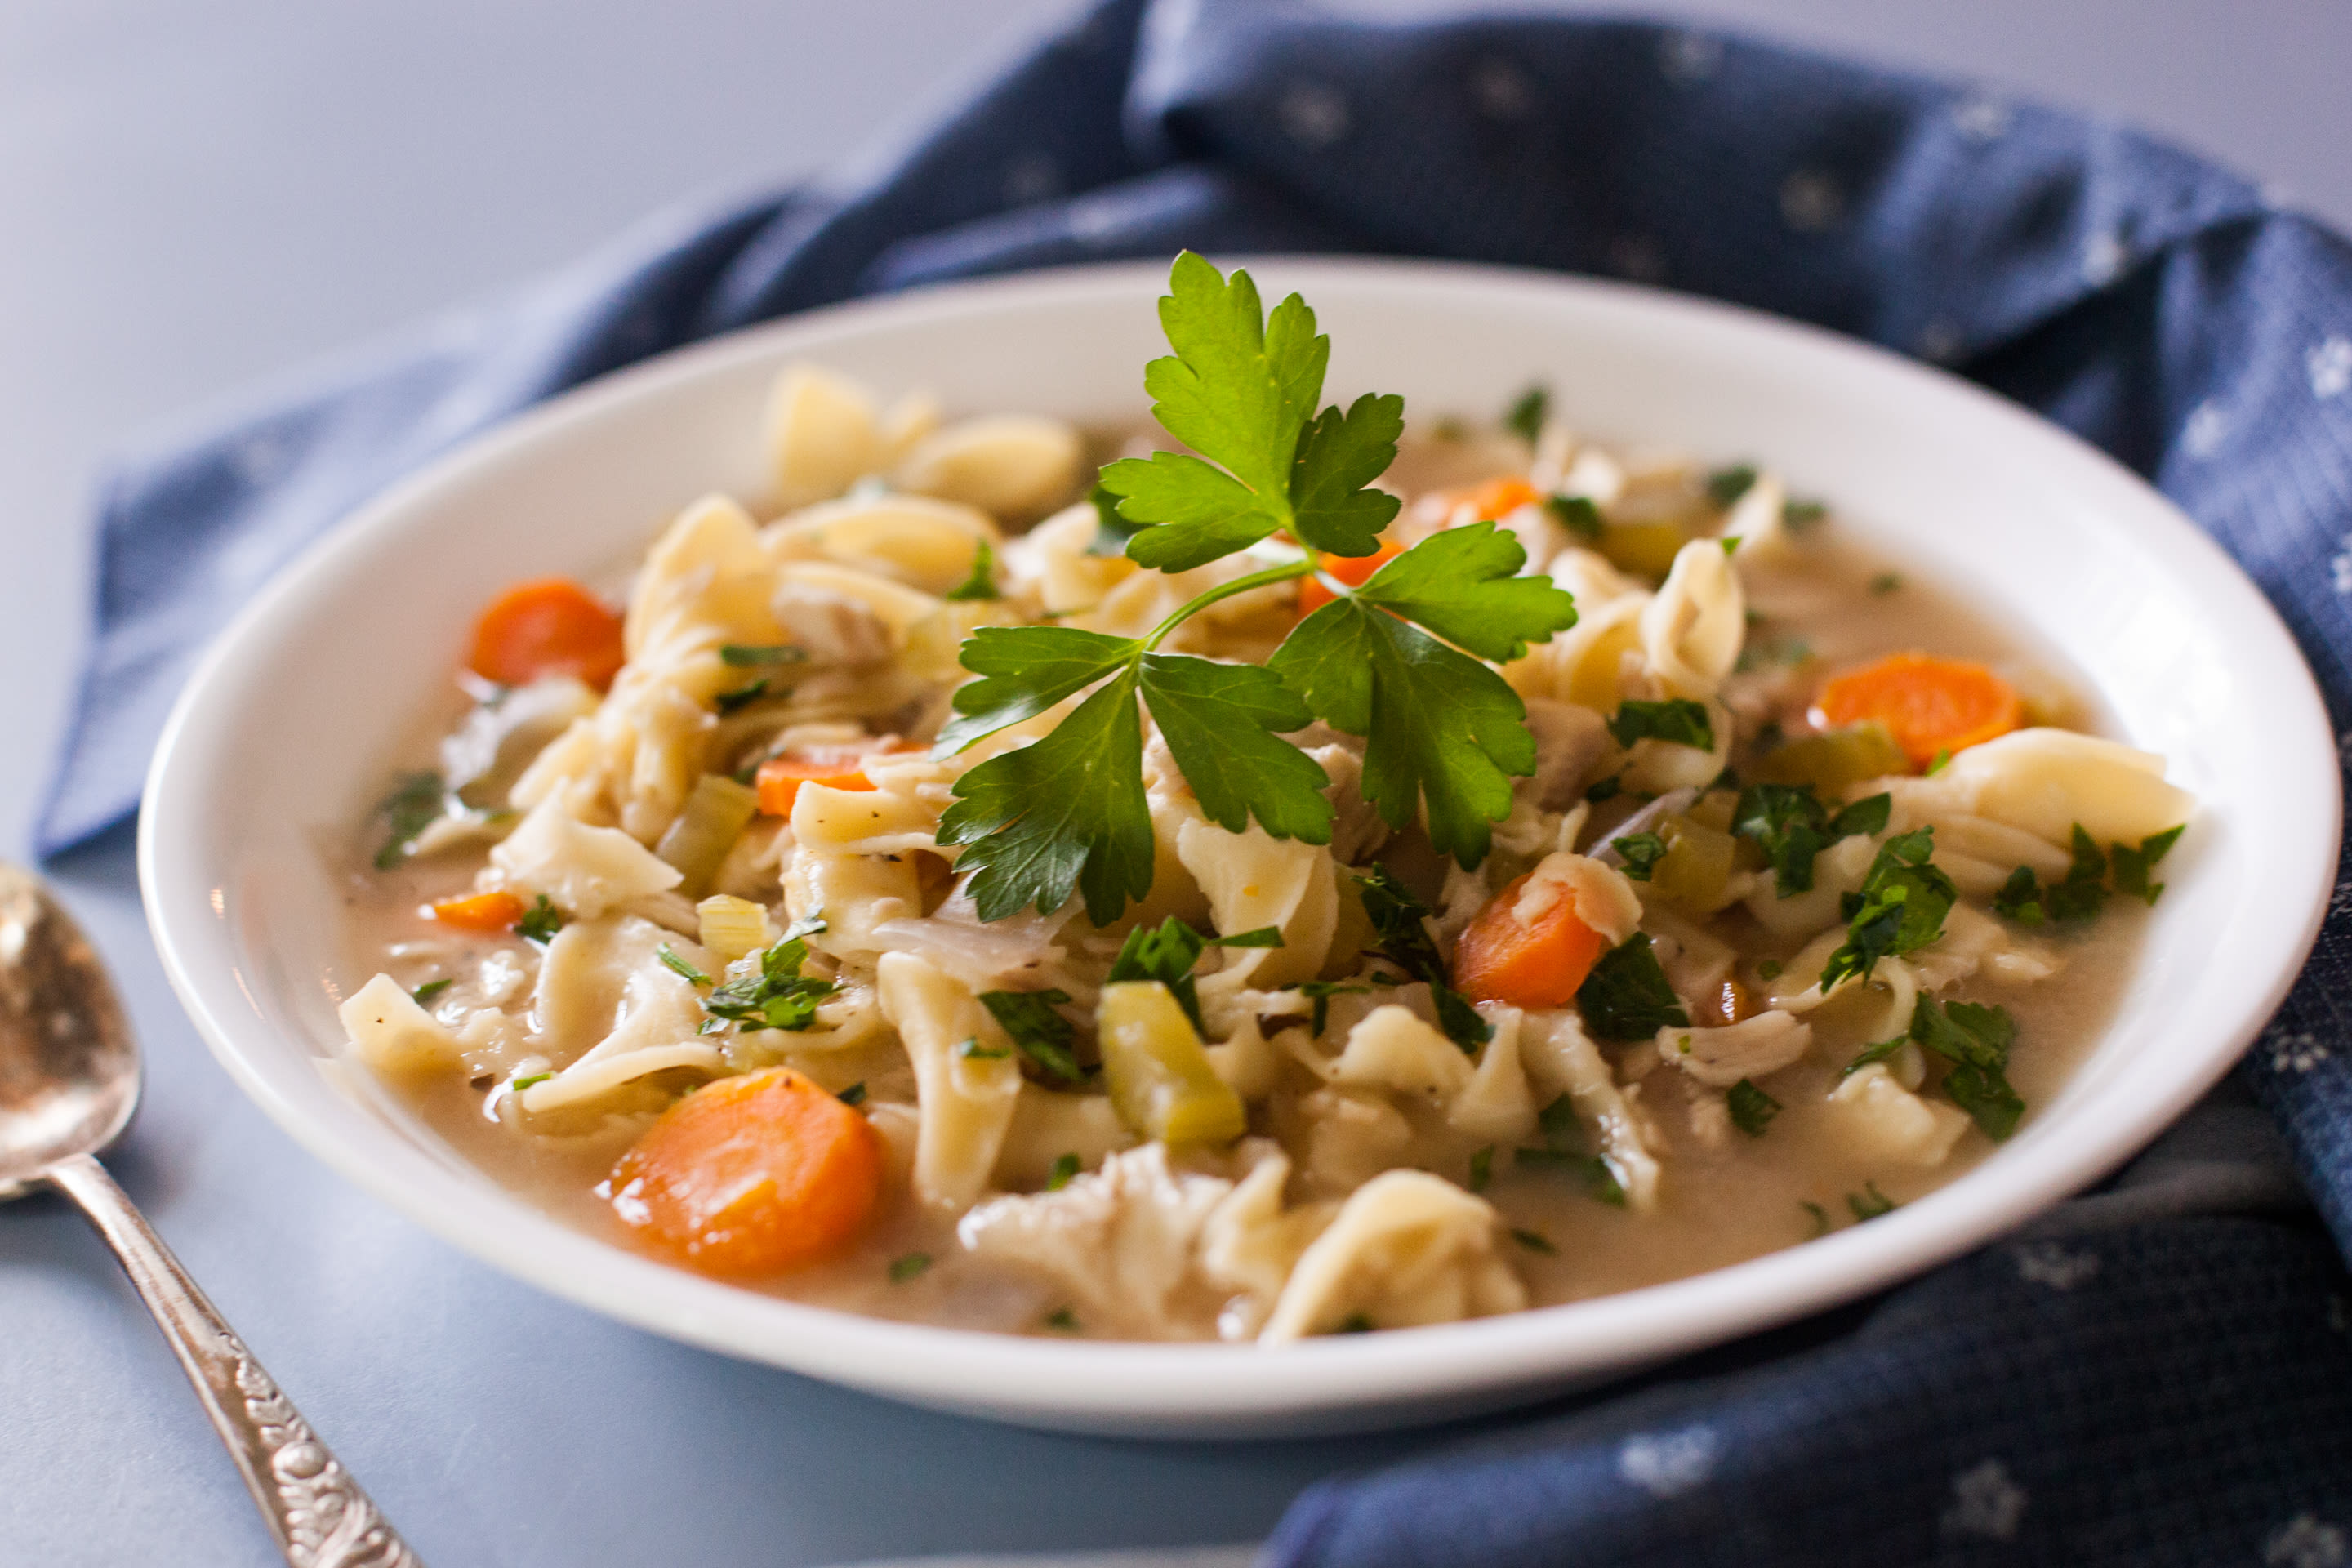 Slow cooker chicken noodle soup recipe genius kitchen forumfinder Images